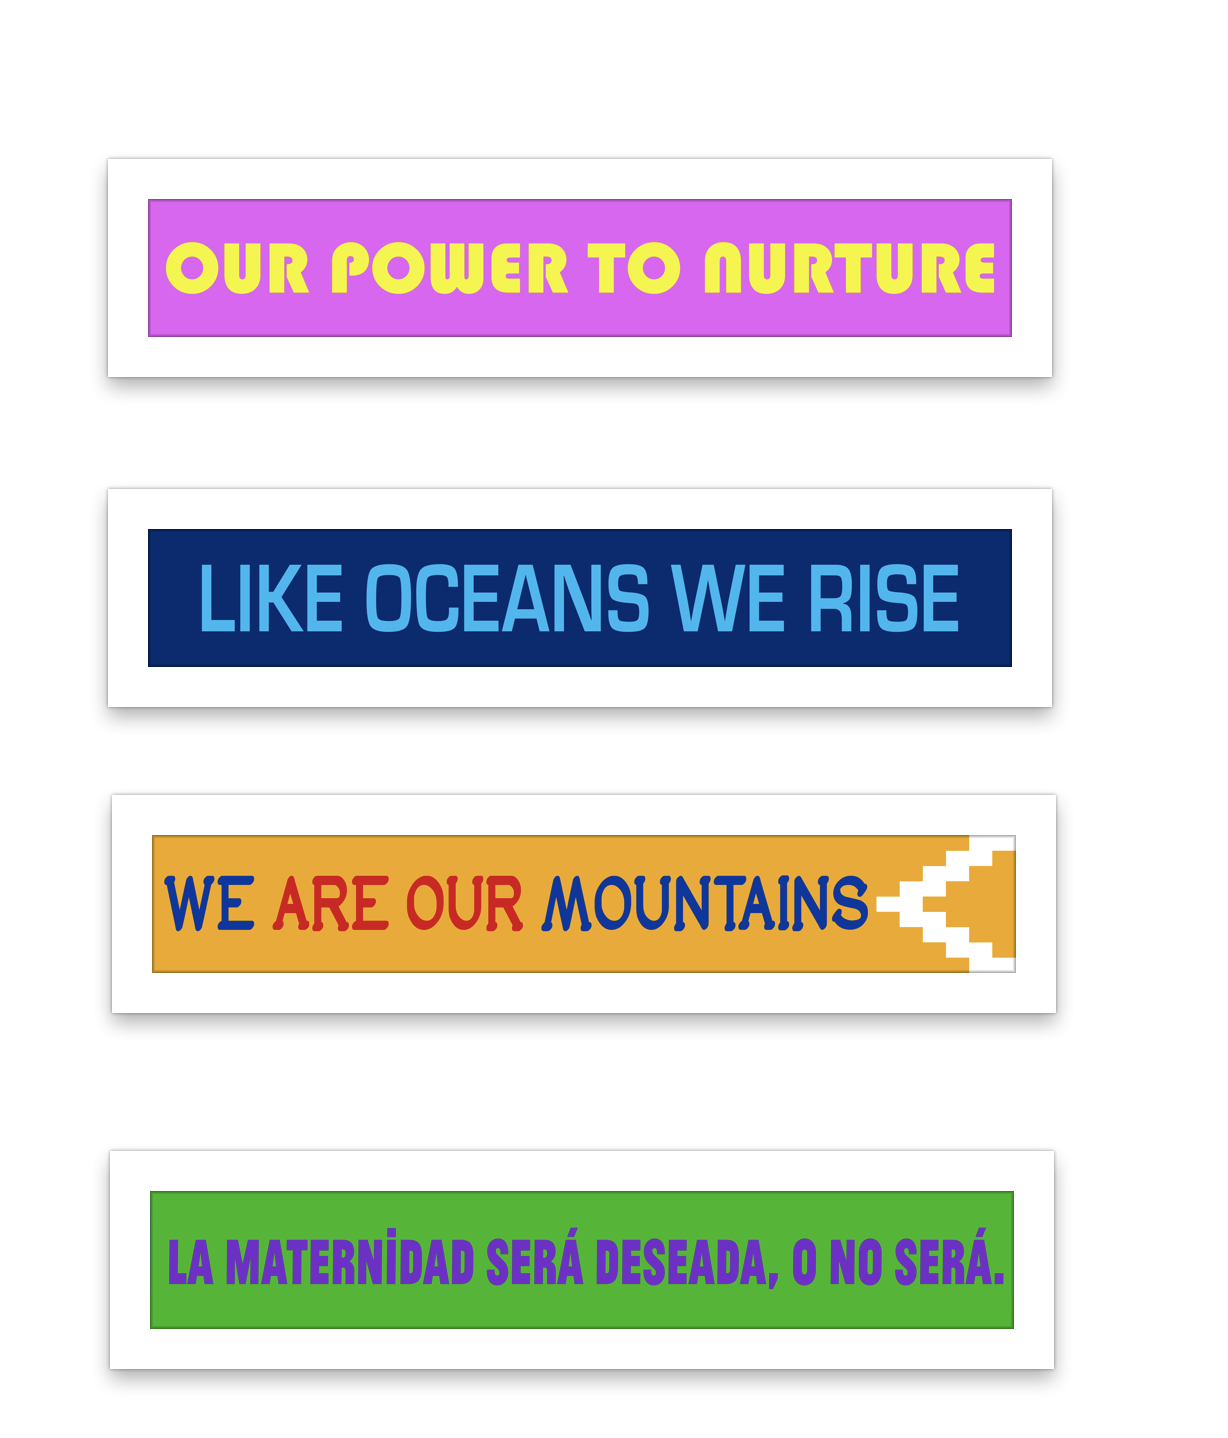 """A series of colorful banners lined up in a column. The first banner reads """"Our Power to Nurture"""" in thick, round yellow letters over a bright pink background. The second banner reads """"Like Oceans We Rise"""" in thin and tall bright blue letters over a navy blue background. The third banner reads """"We Are Our Mountains"""" with the words, """"we"""" and """"mountains"""" in blue and """"are our"""" in red. To the right of the words is a triangular design in white. The entire design is over a yellow background. The four banner reads """"La maternidad será deseada, o no será"""" in bold, blocky purple letters over a green background."""